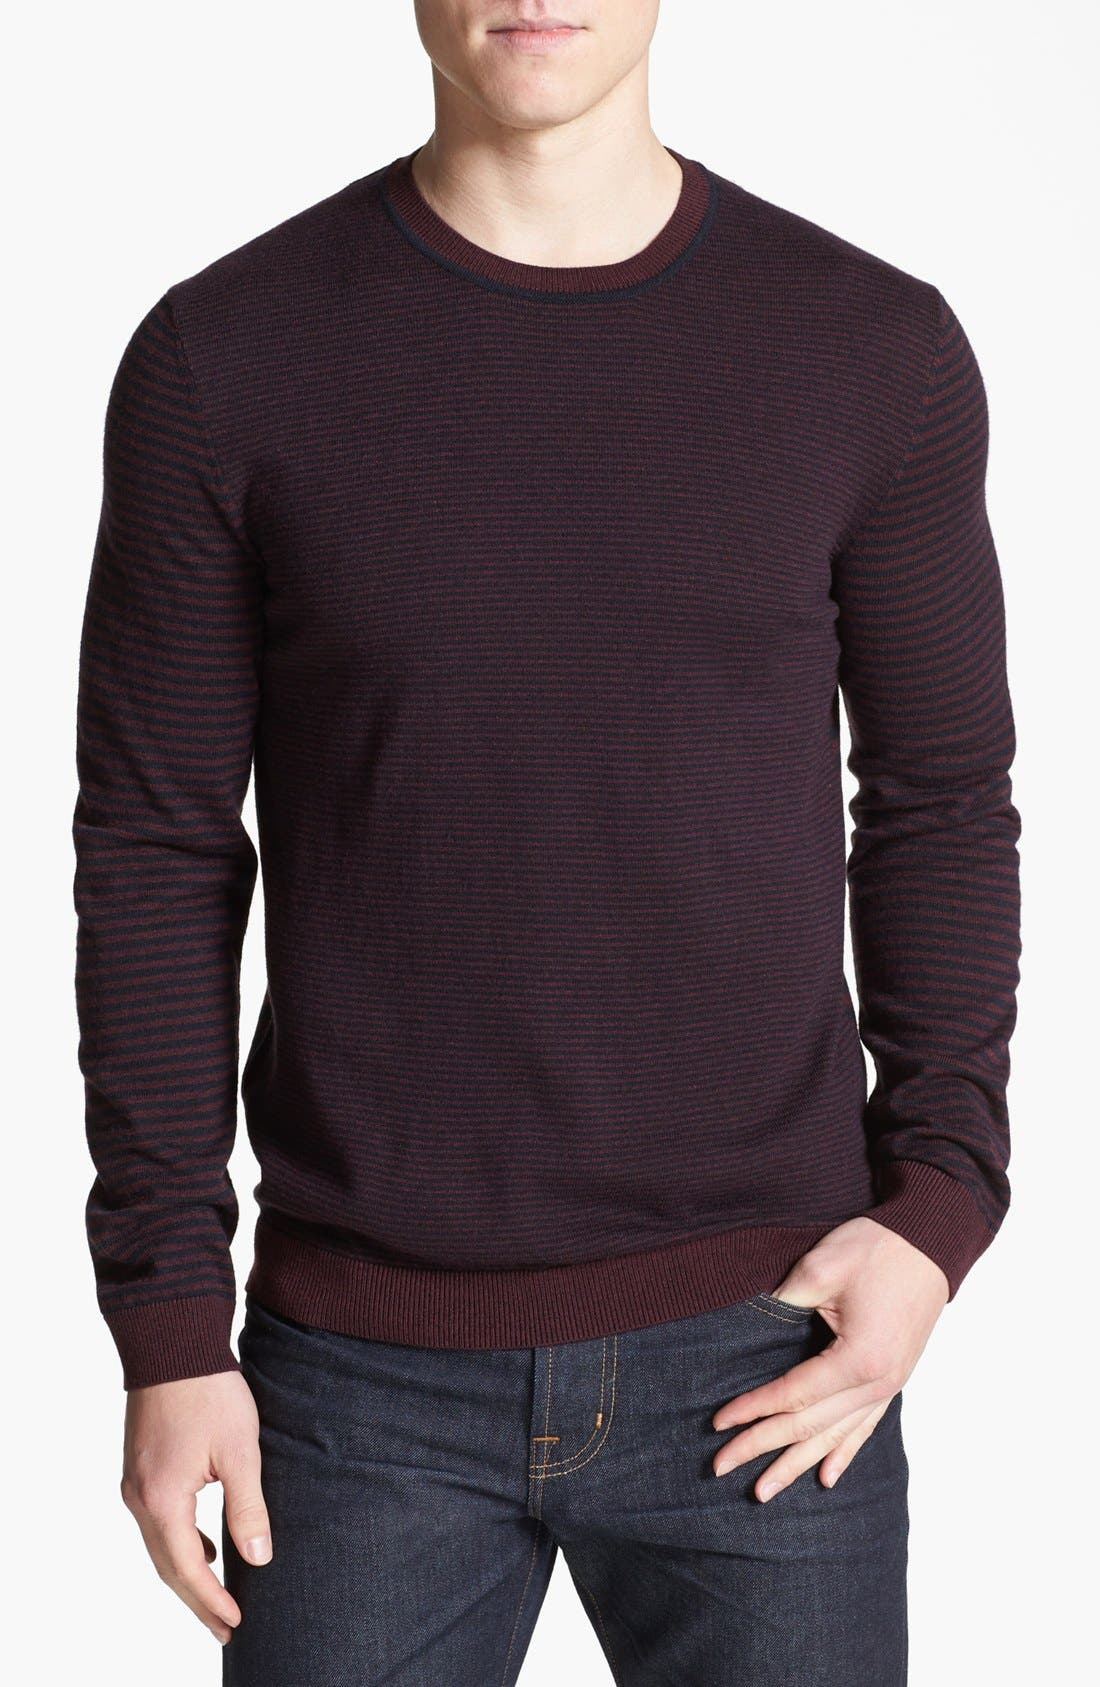 Alternate Image 1 Selected - Ted Baker London 'Moseley' Striped Crewneck Sweater